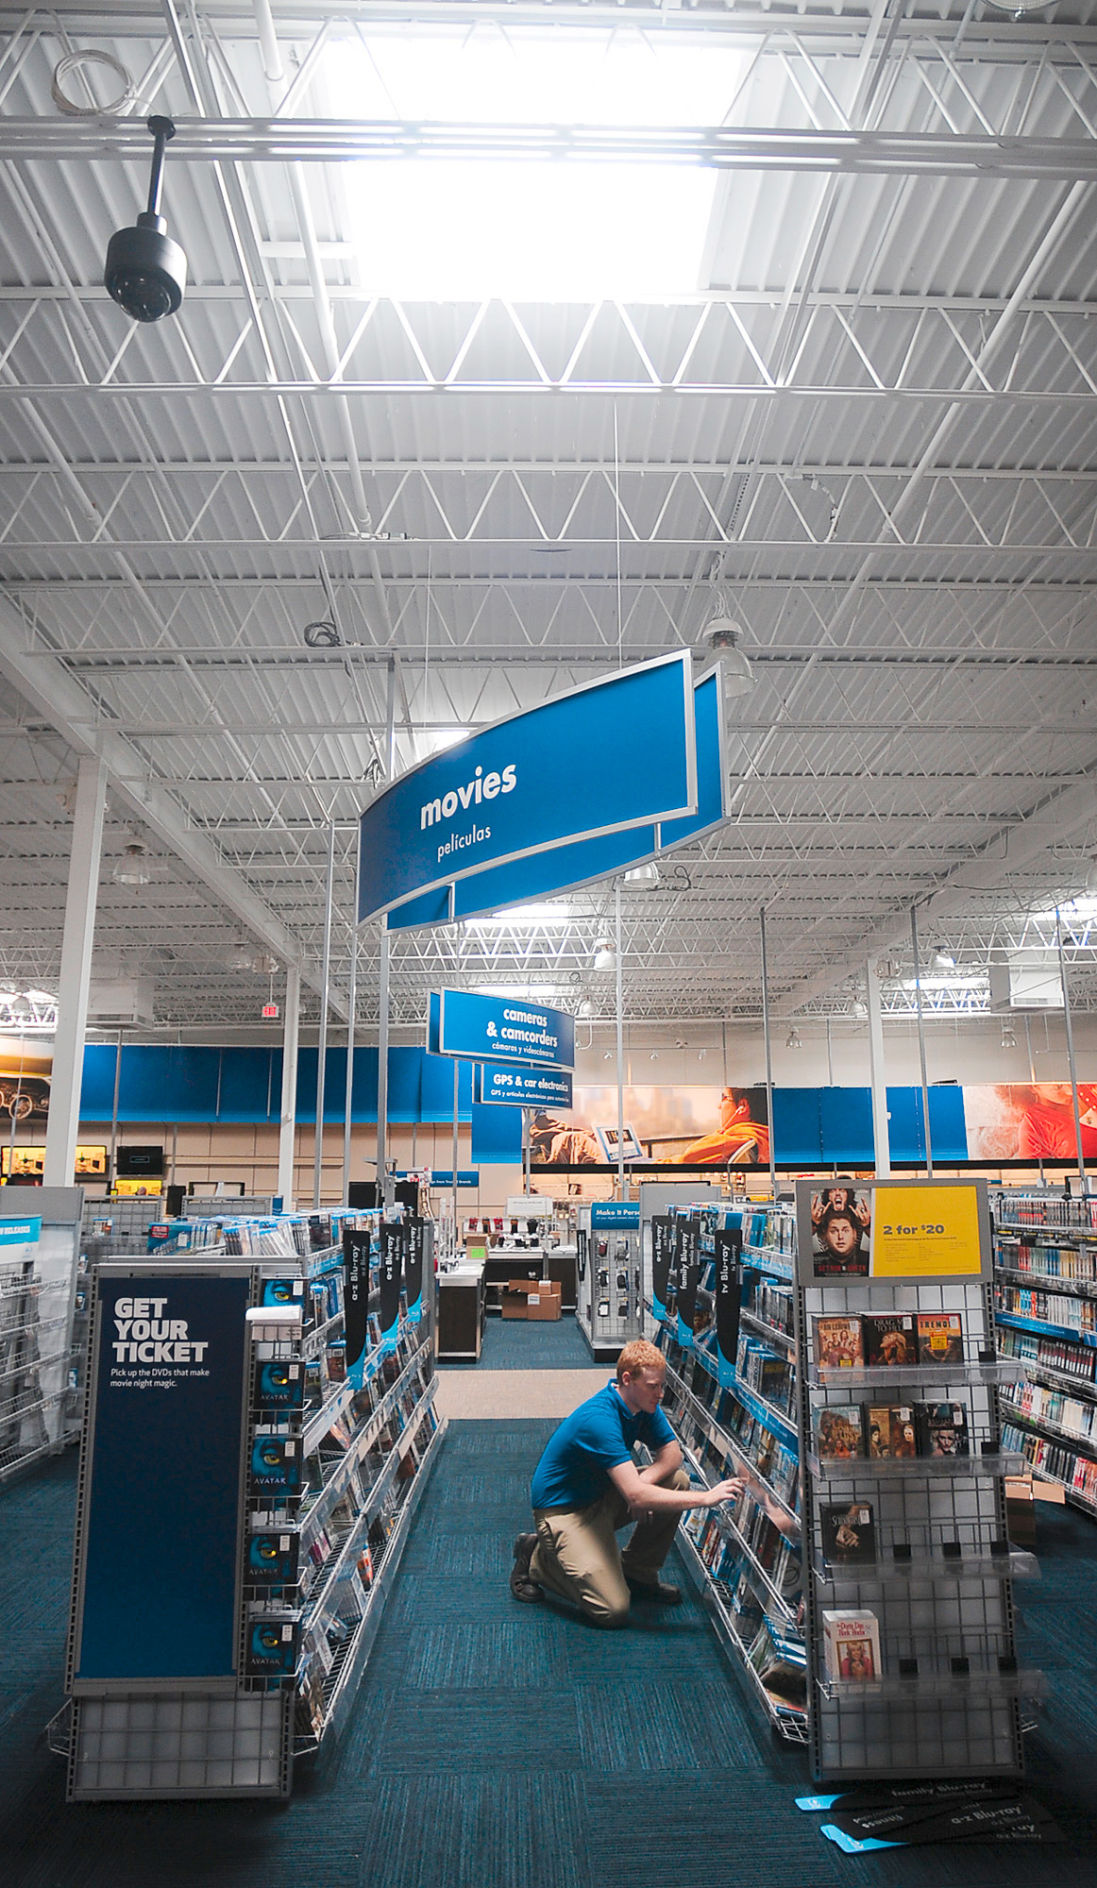 New best buy store aims for us green building council leed new best buy store aims for us green building council leed certification 1betcityfo Gallery